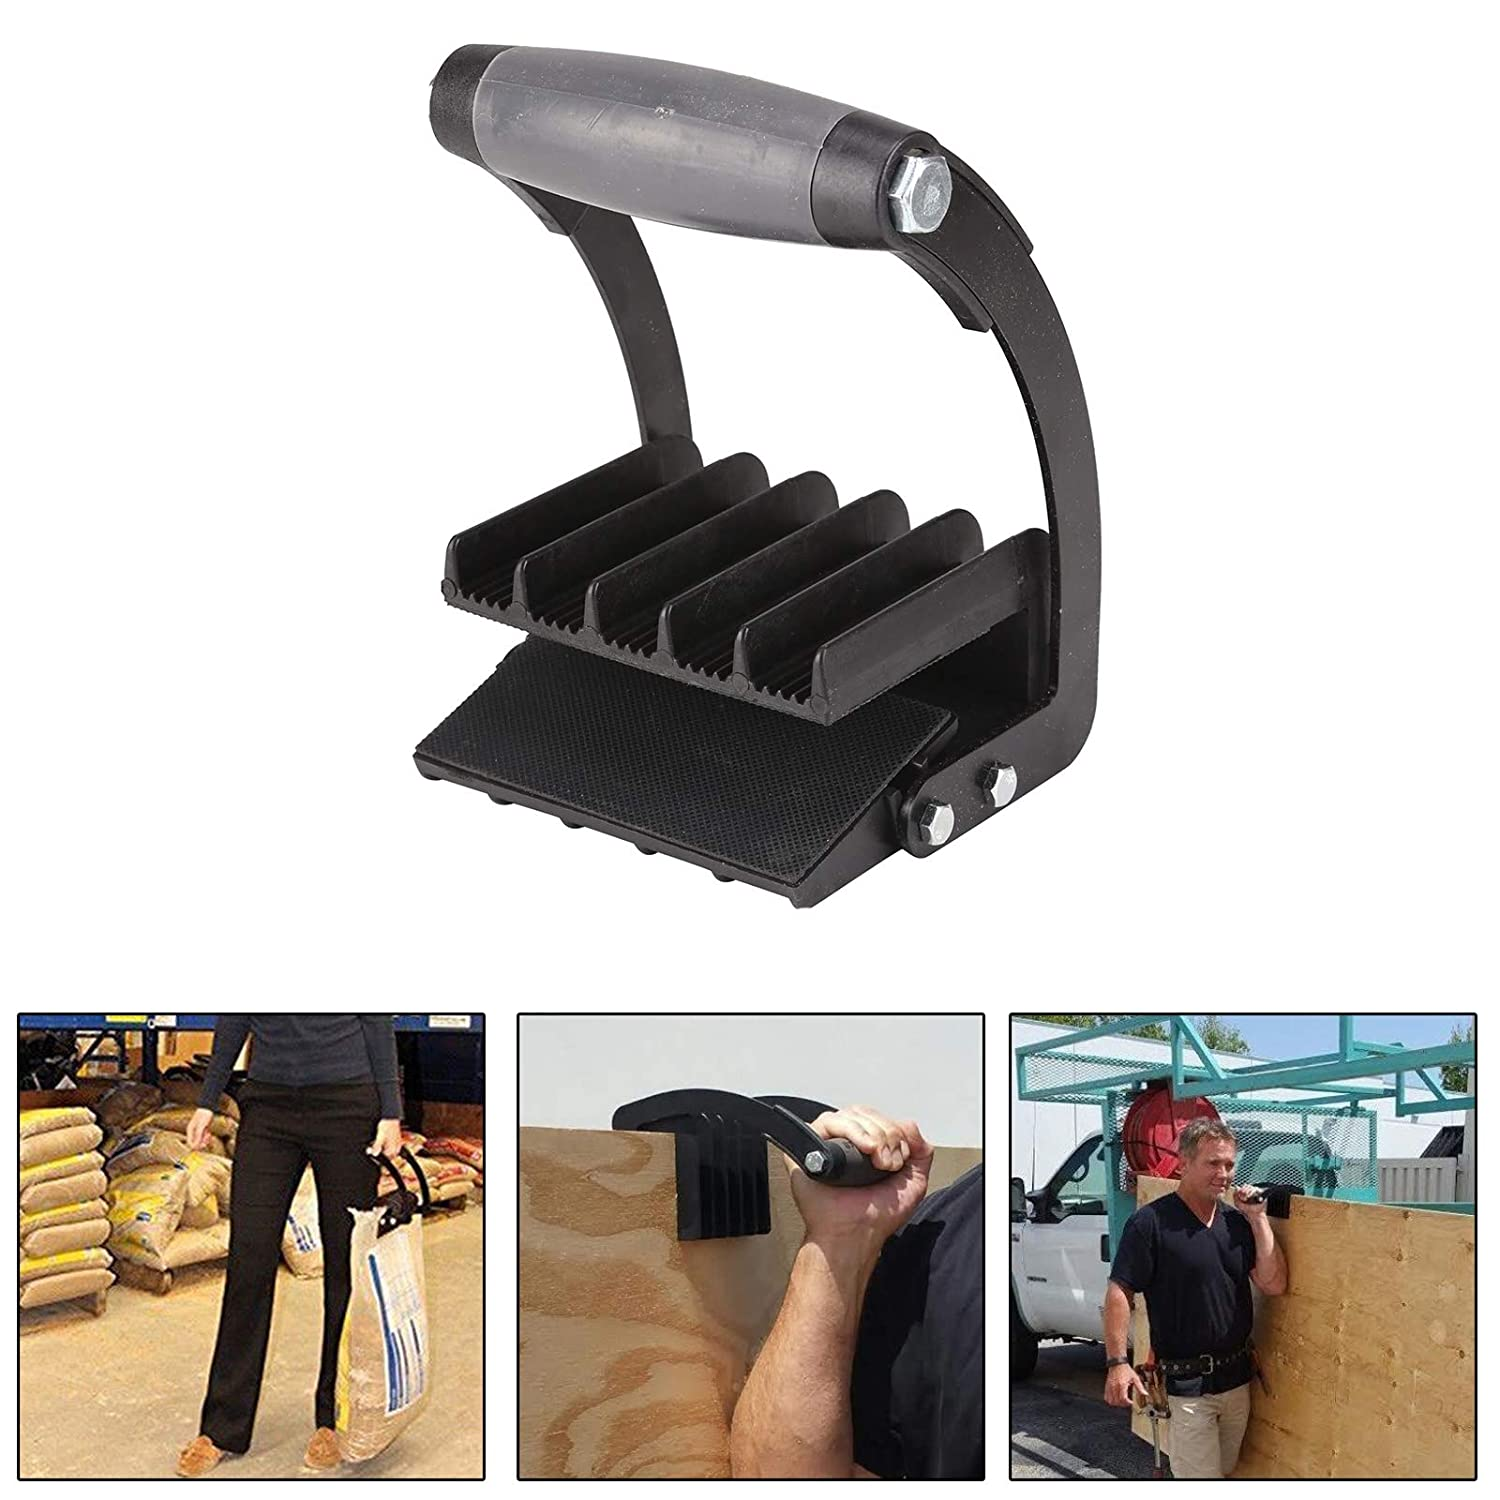 PIHER/® Additional Arm for Load 100/kg One-Handed Operation Drywall Accessories Last Rod Support